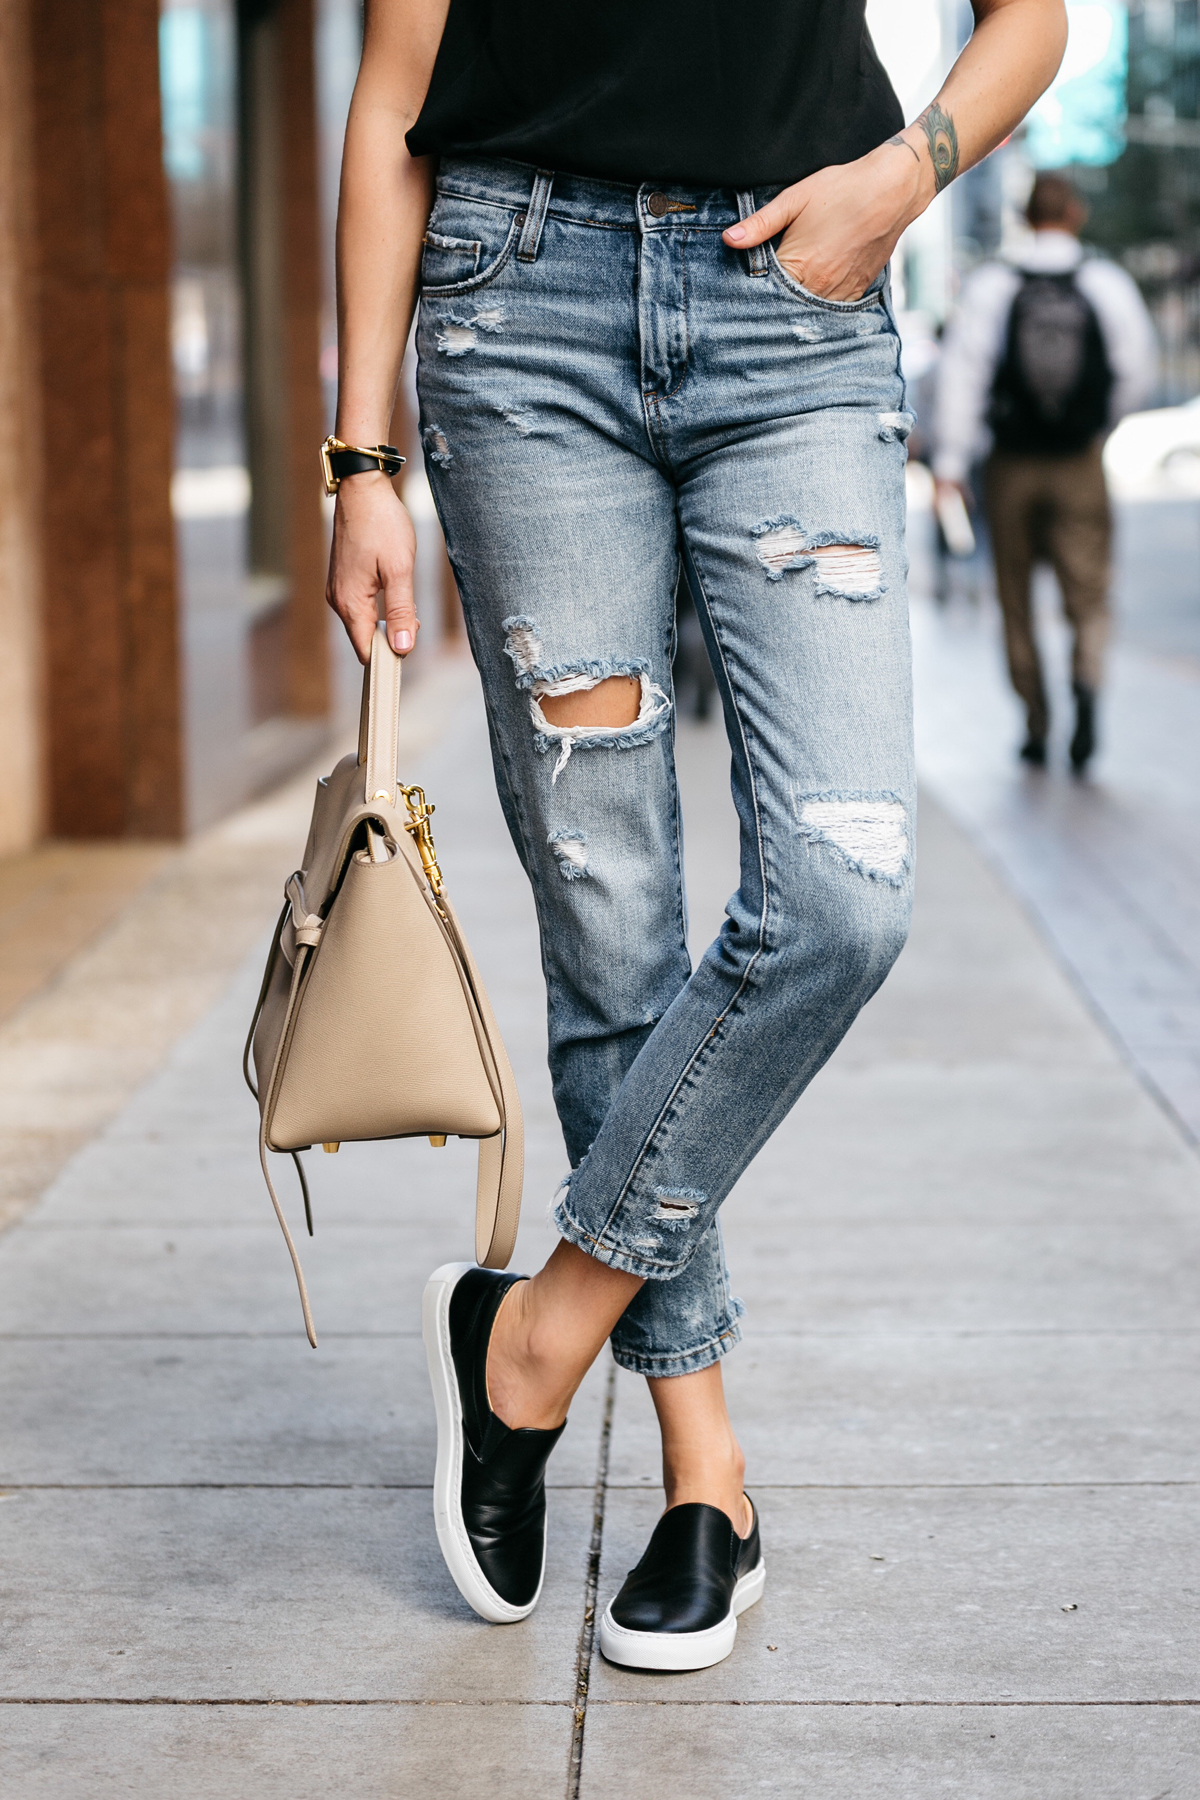 Fashion Jackson, Dallas Blogger, Fashion Blogger, Street Style, Blanknyc Ms Throwback Denim Ripped Relaxed Jeans, Celine Belt Bag, Greats The Wooster Sneaker, Black Slip-On Sneakers